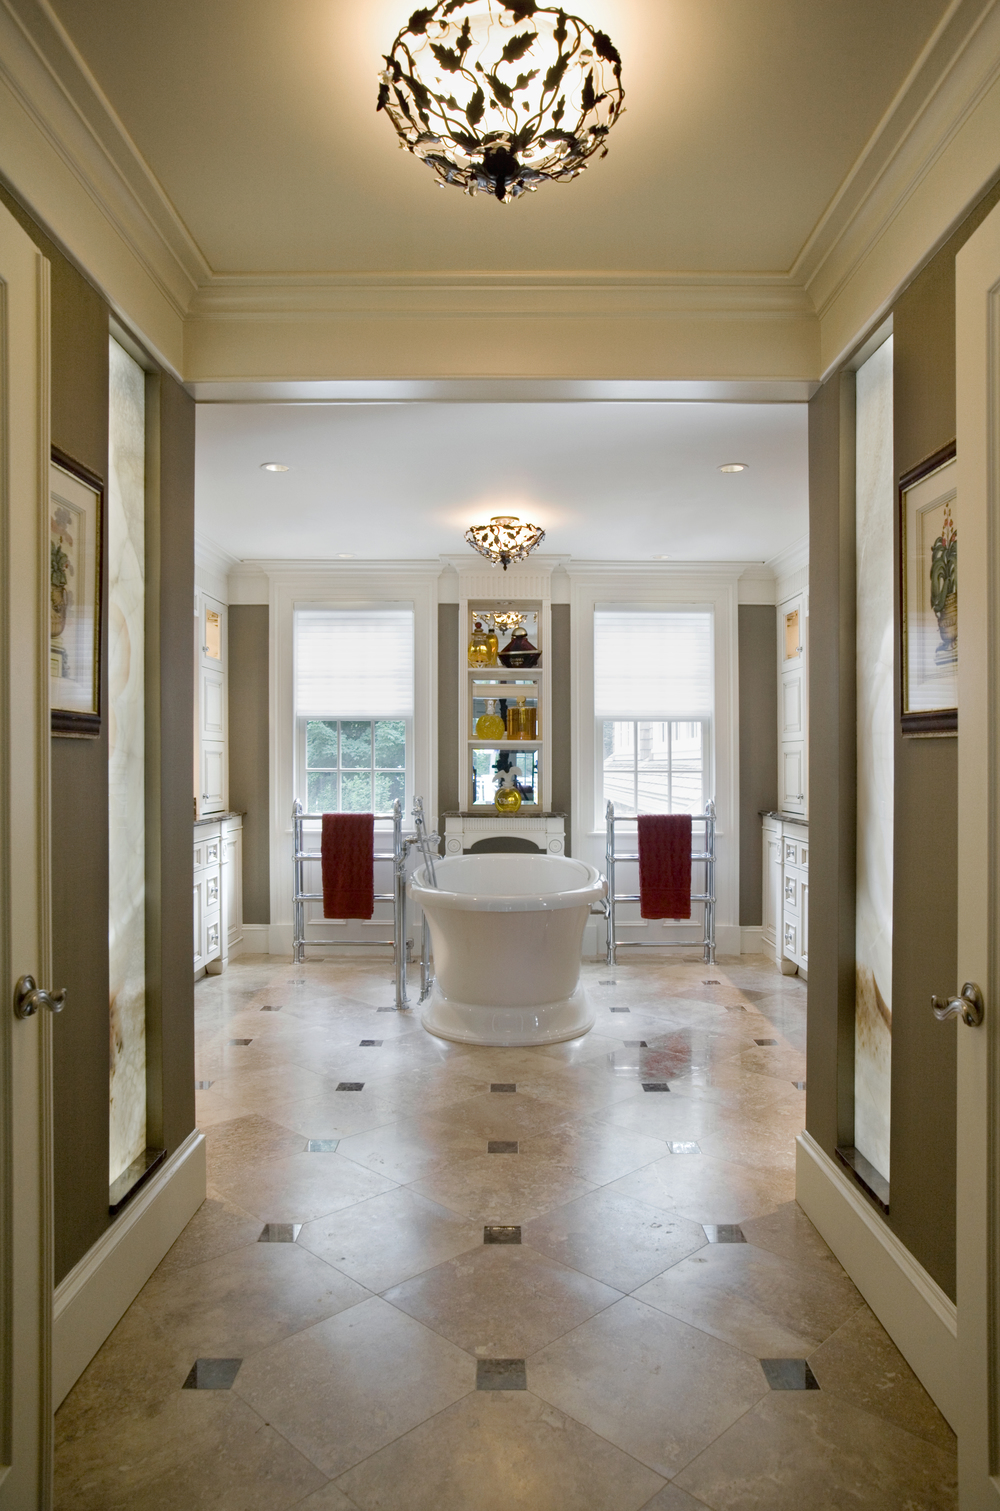 Weston bathroom 1.jpg